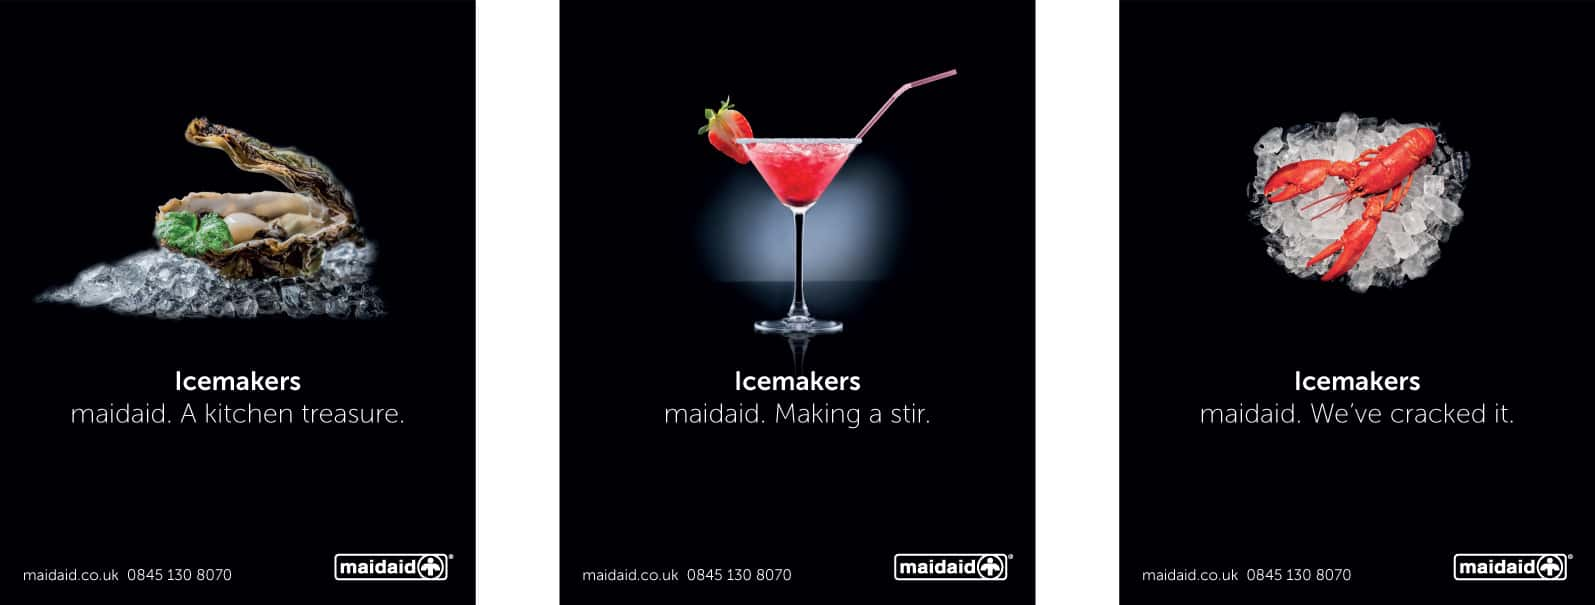 Maidaid Ice adverts